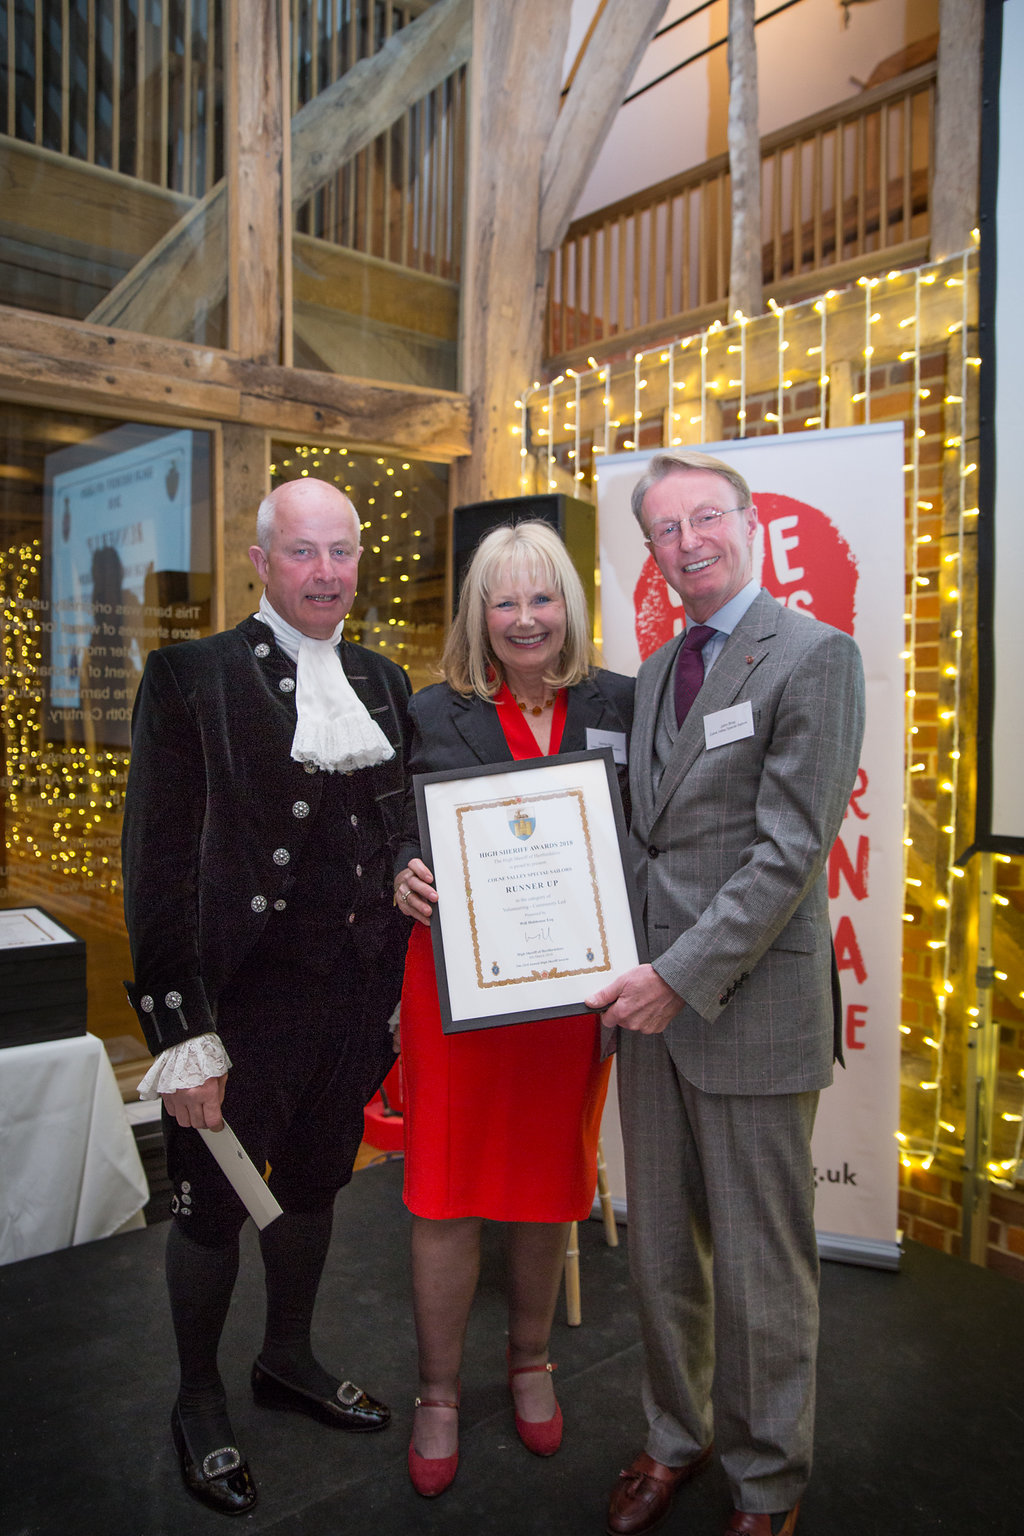 High Sheriff Awards 2018